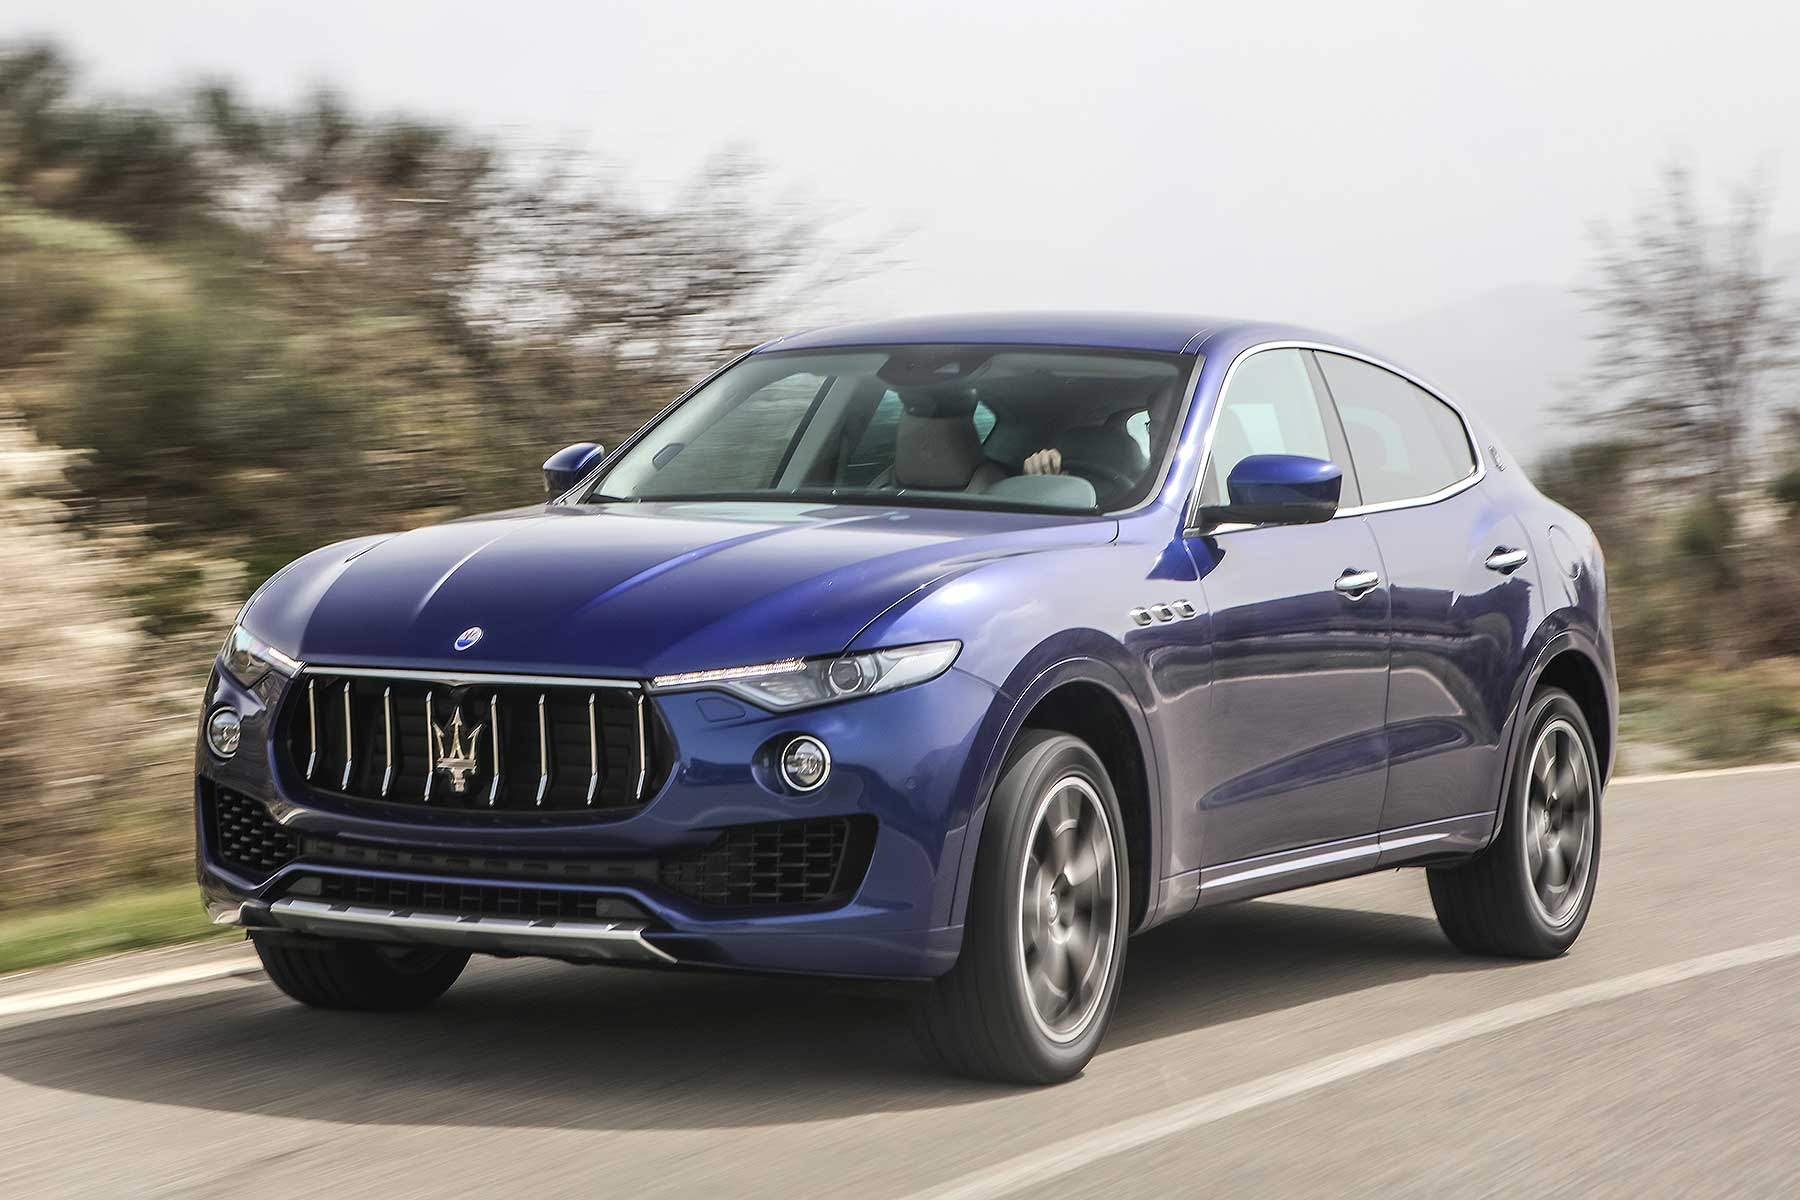 2016 Maserati Levante review: can Maserati really make an SUV ...